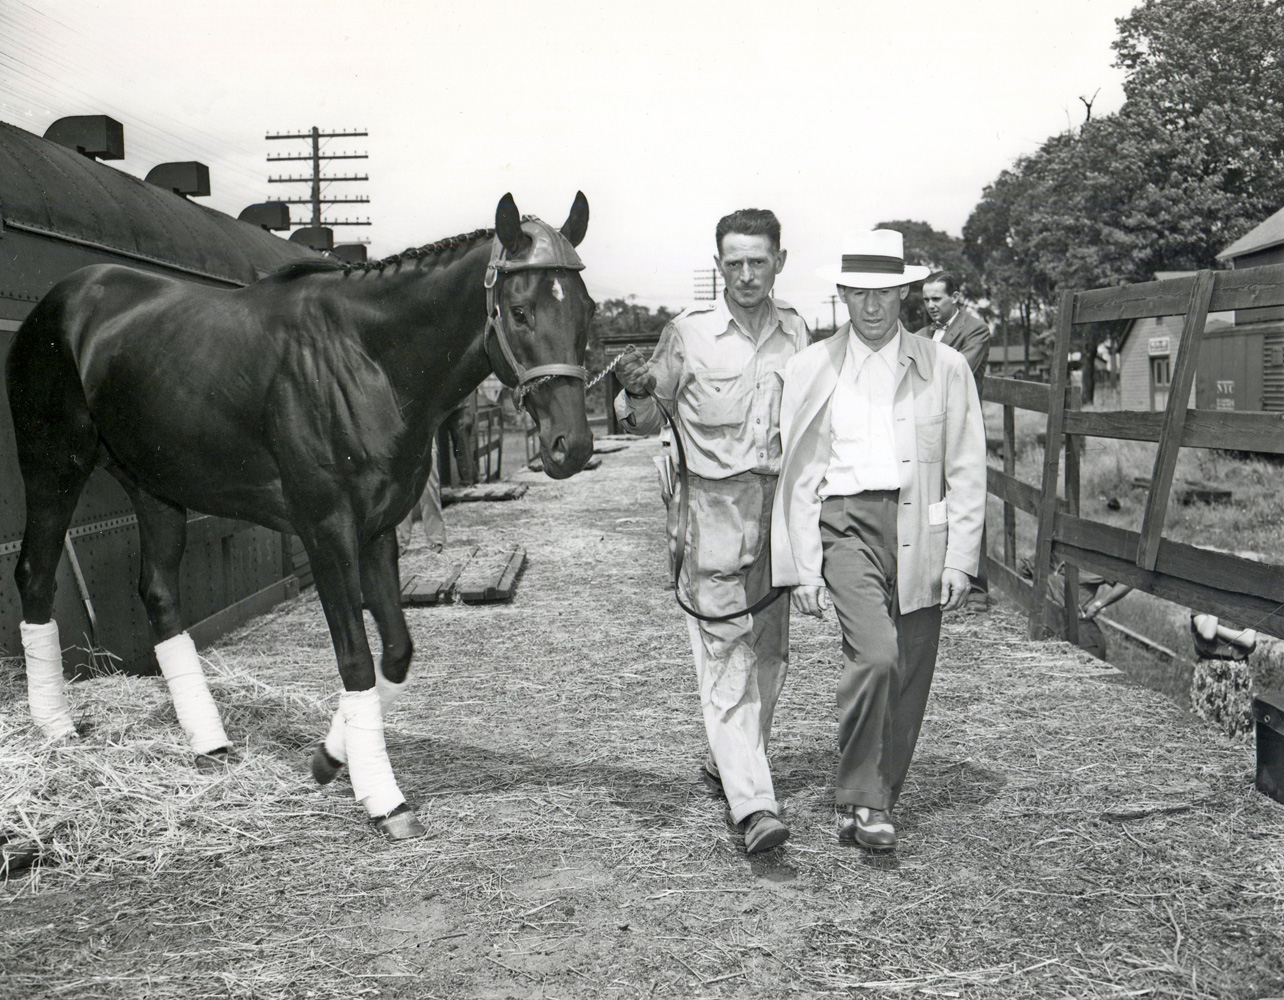 Noor arriving by train at Saratoga with trainer Burley Parke, August 1950 (Keeneland Library Morgan Collection/Museum Collection)